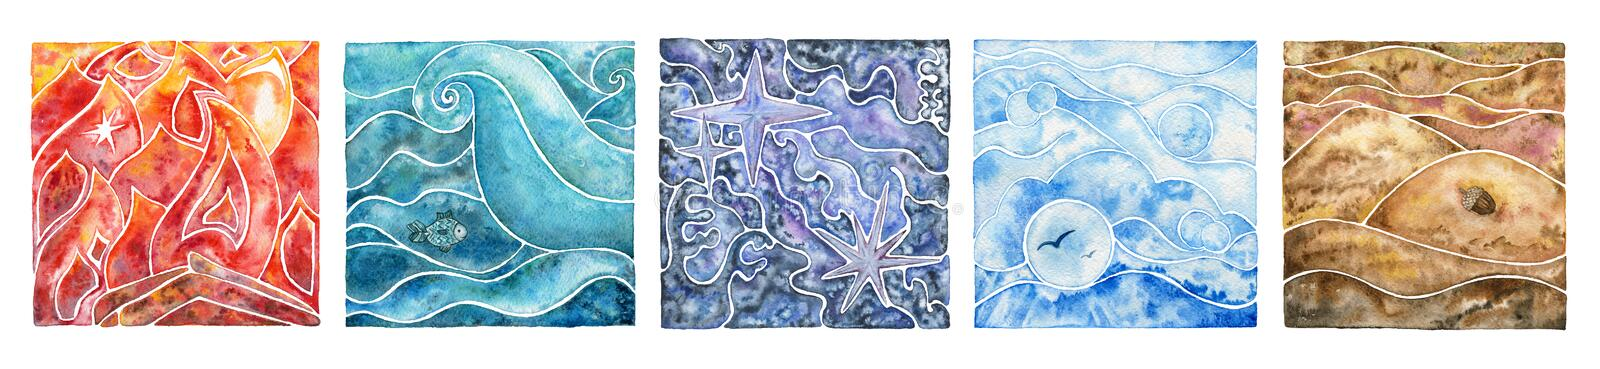 Five natural elements: fire, water, ether, air and earth. Abstract mosaic composition with natural elements. royalty free illustration